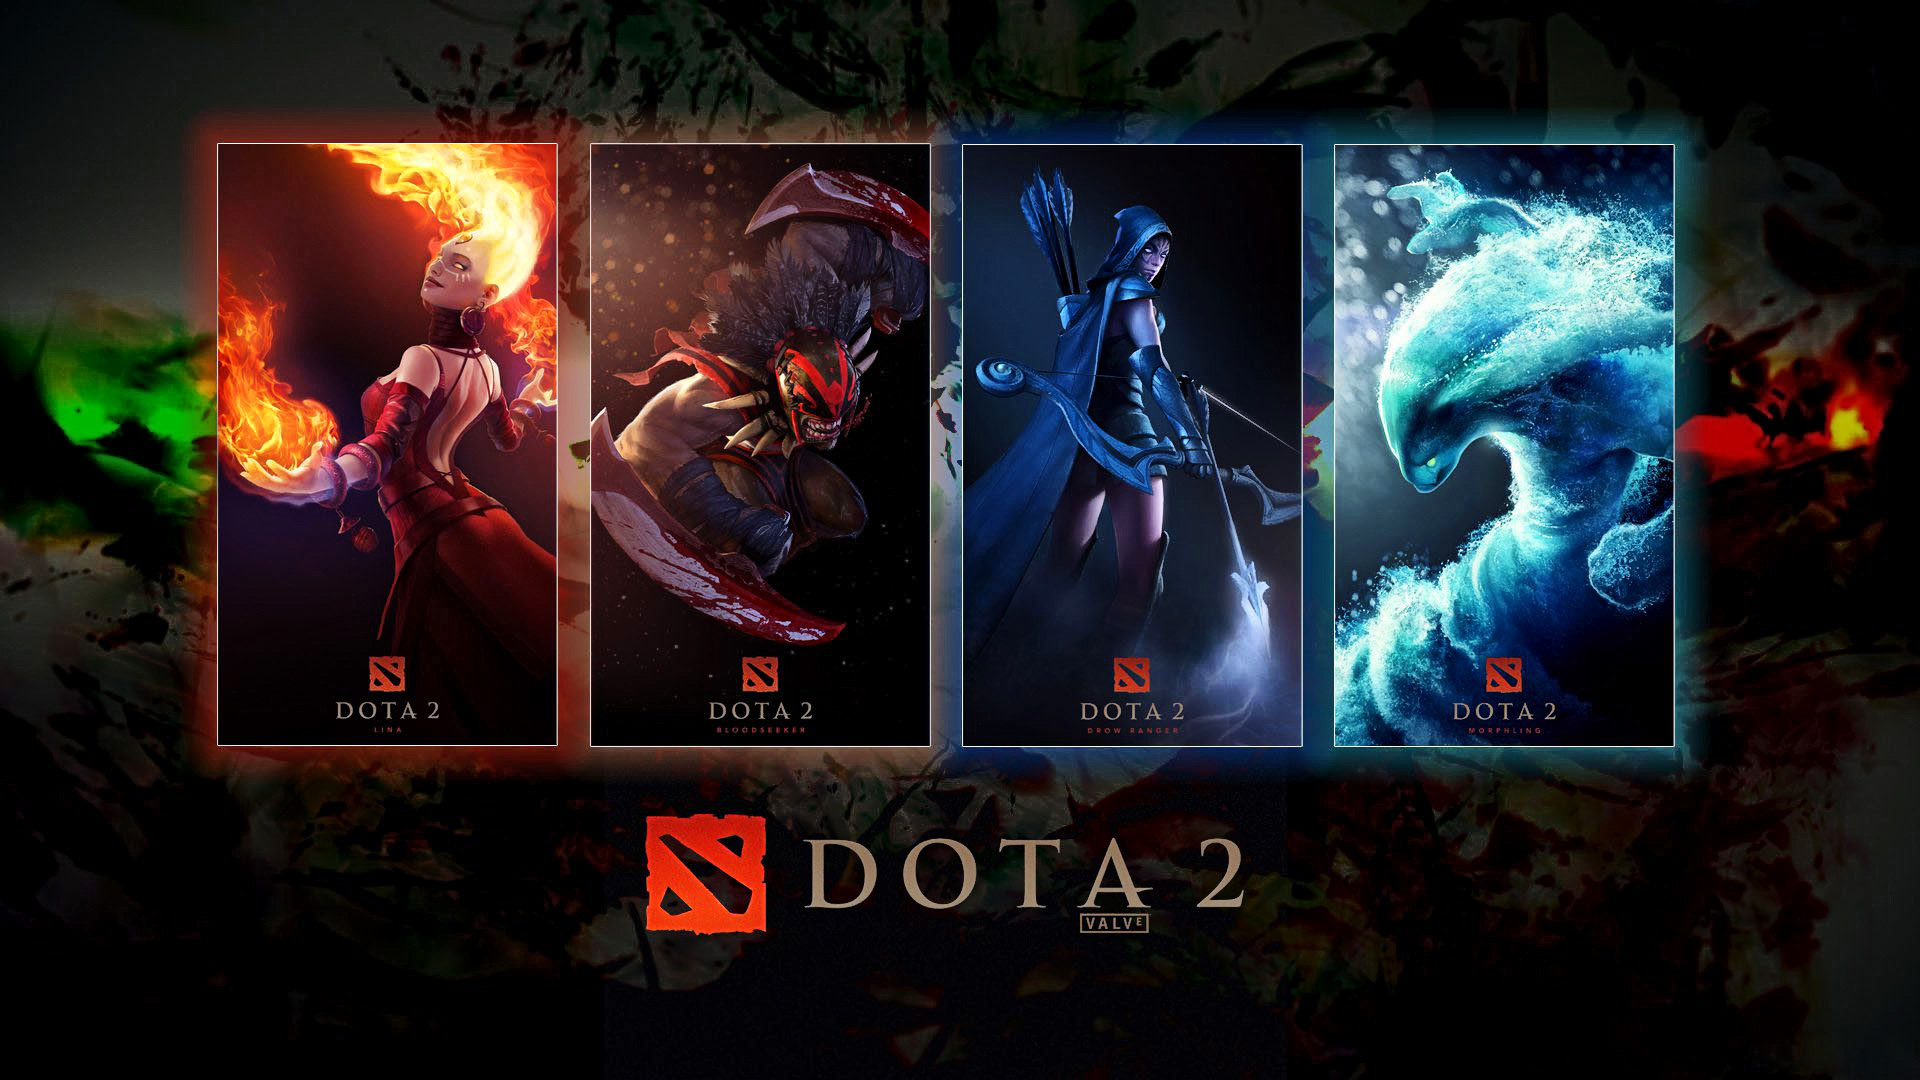 1920x1080 Dota 2 Wallpaper Hd, Top 33 Dota 2 HD Images Original HQ .